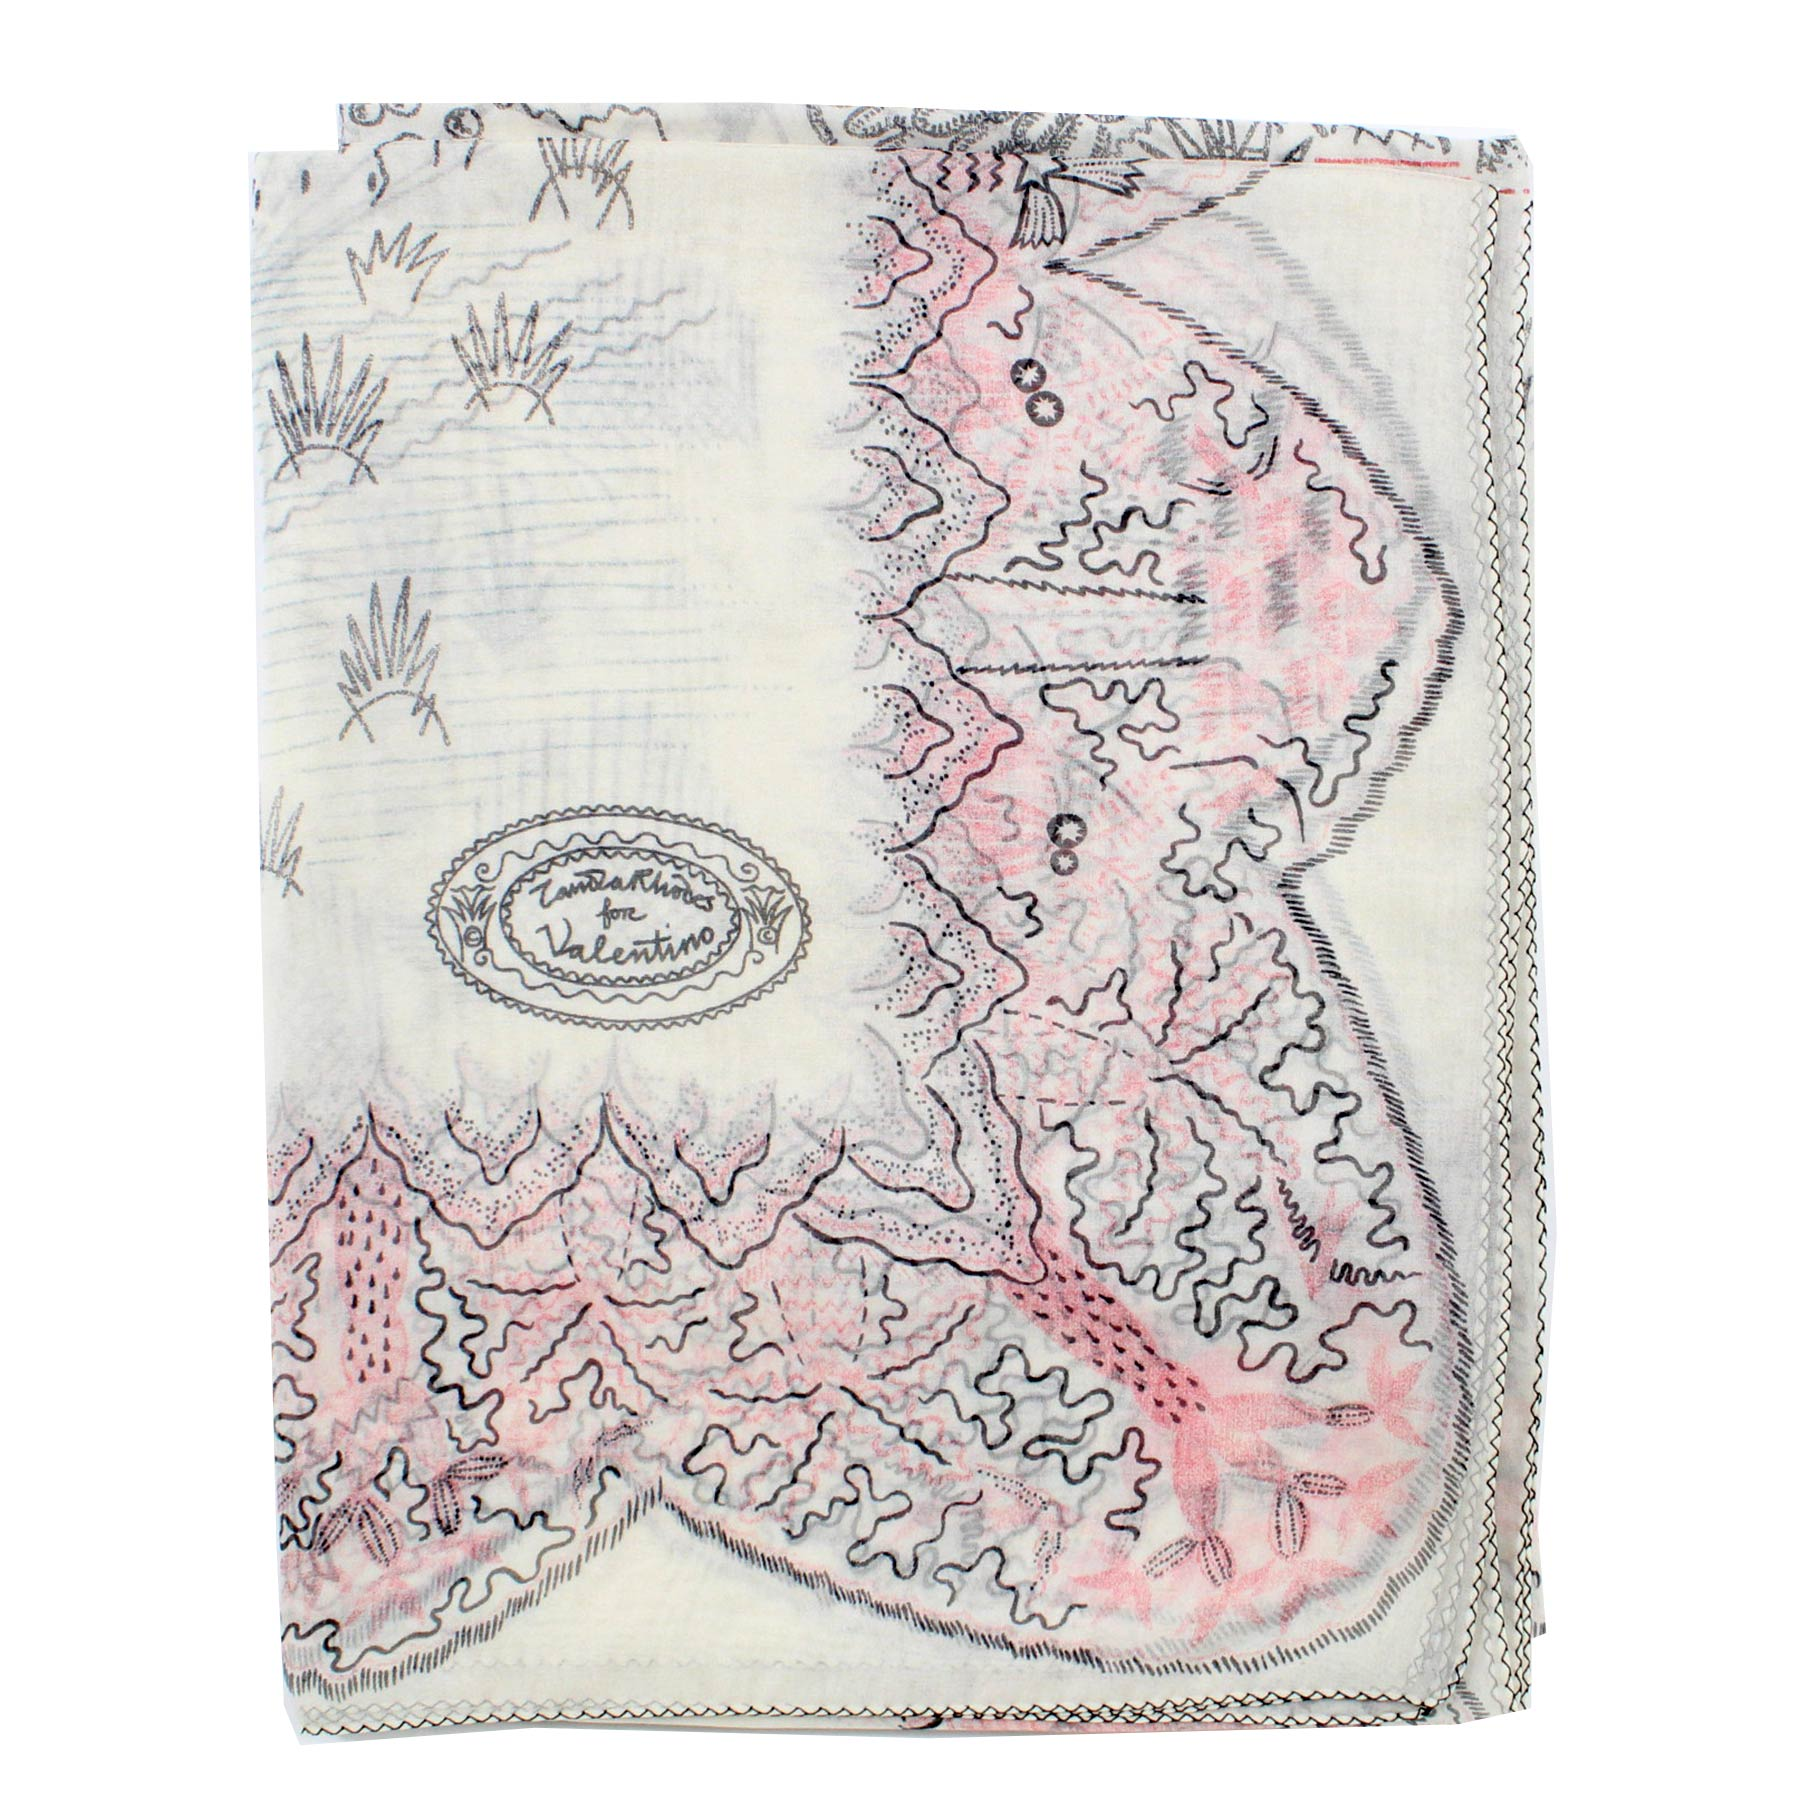 Valentino Scarf White Design - Extra Large Square Wrap